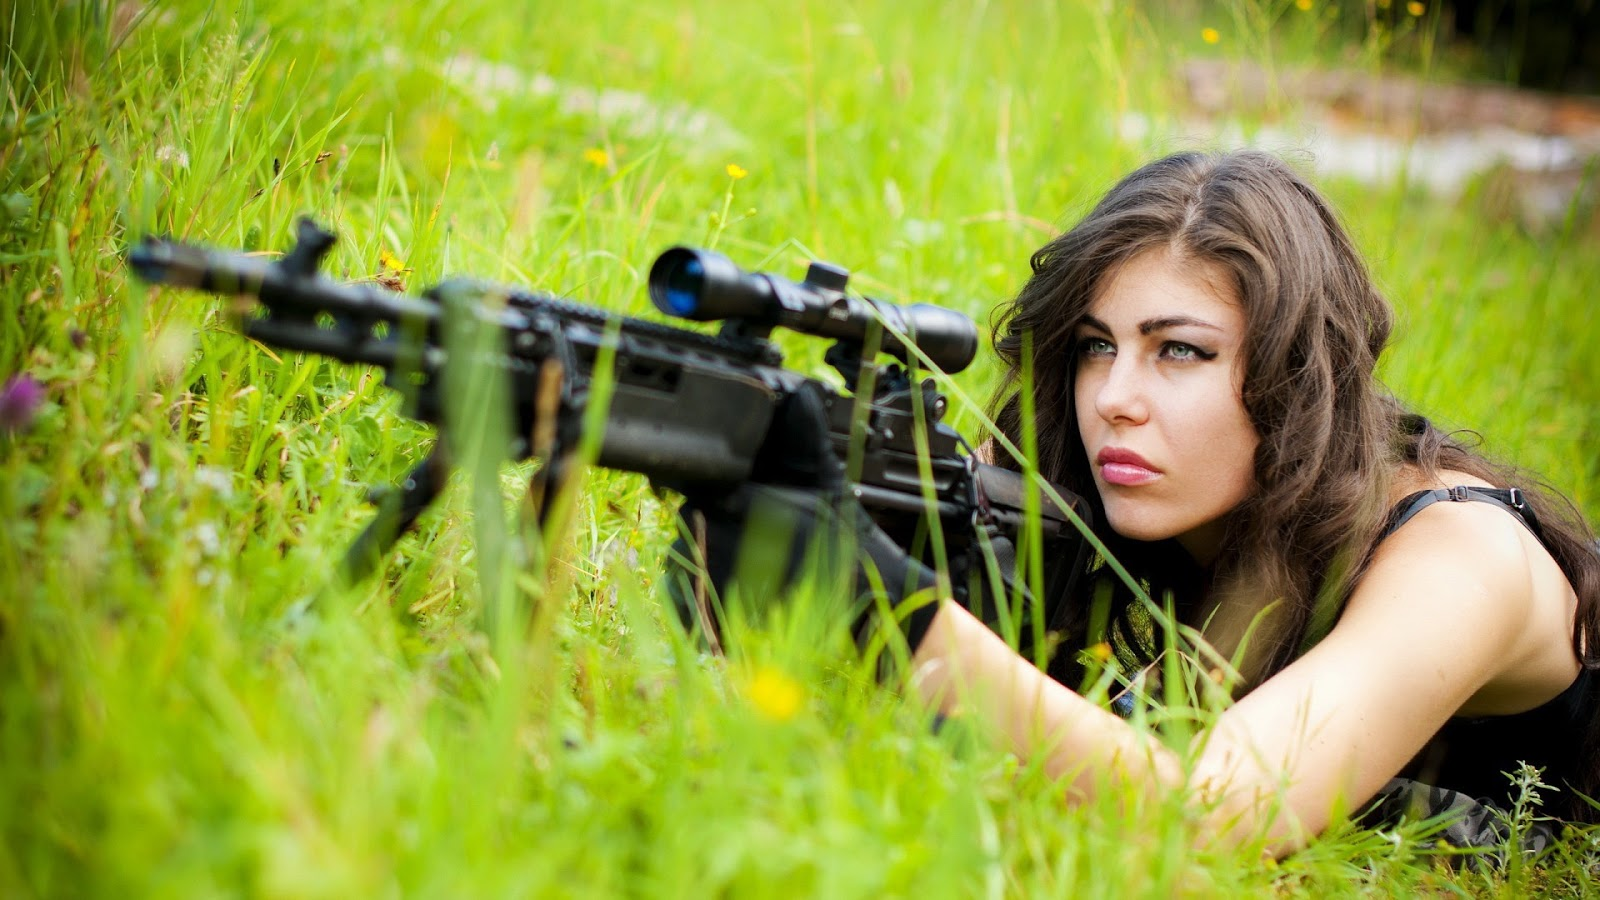 women army sniper wallpaper - photo #14